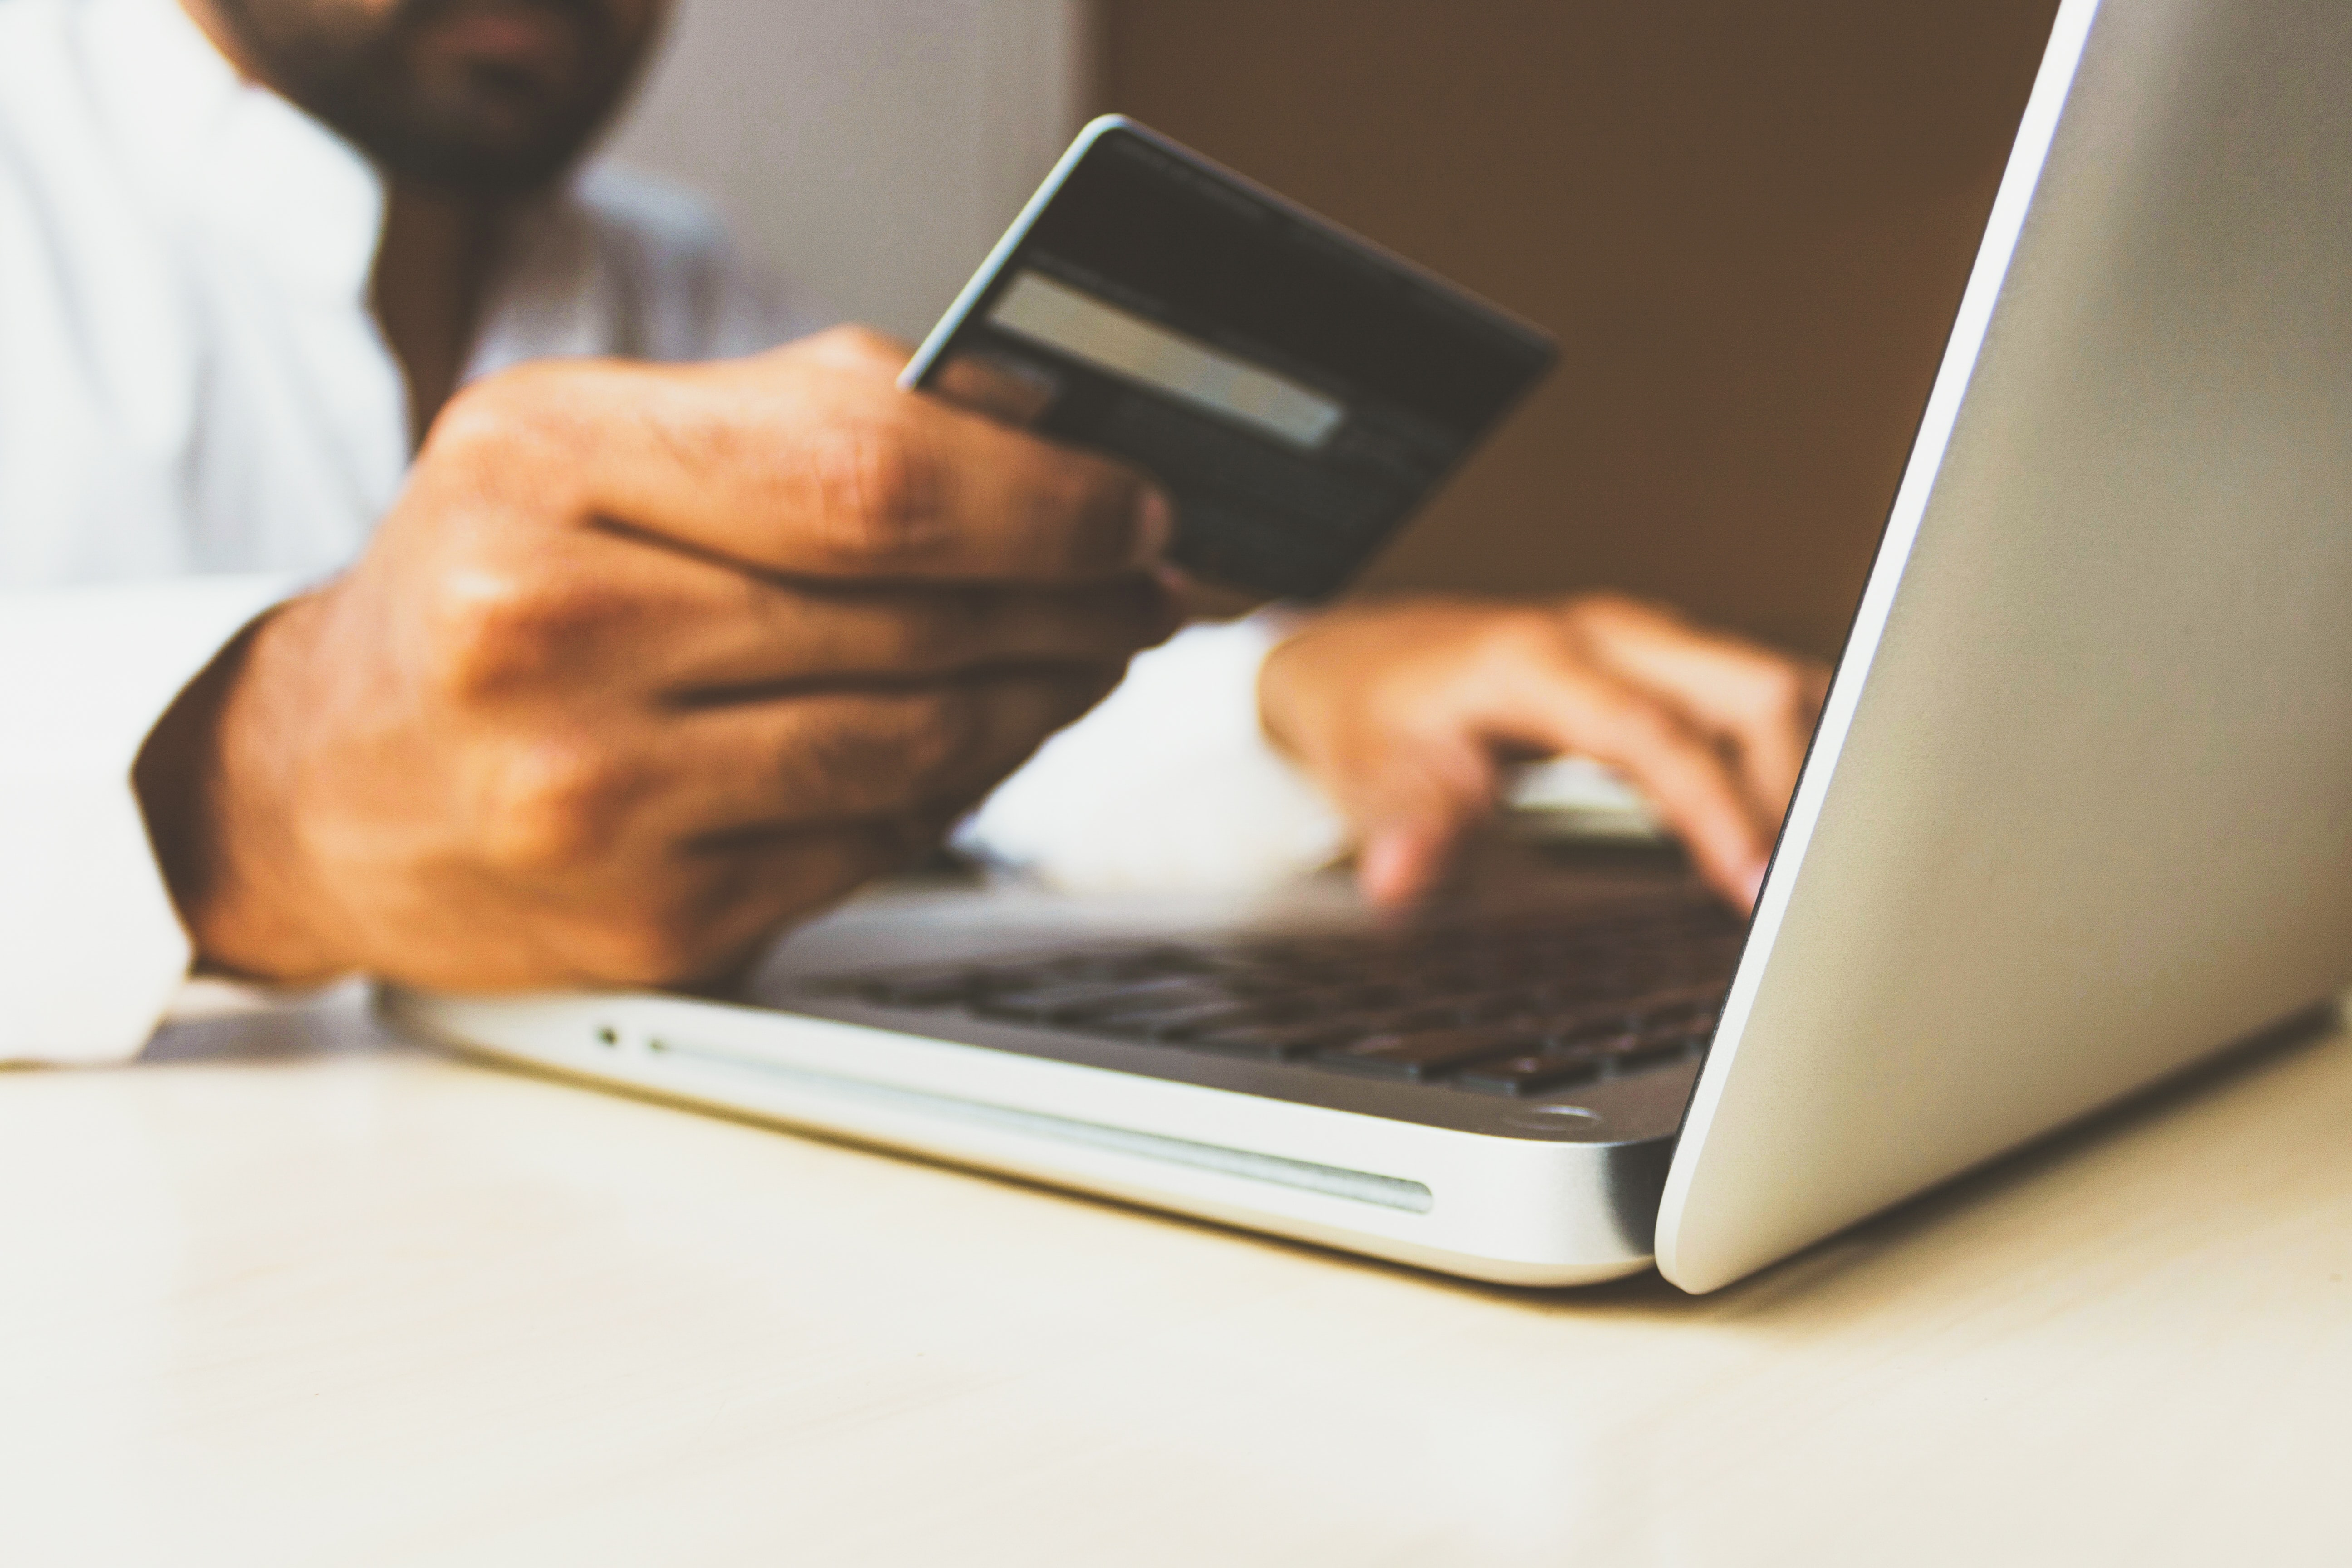 Resist the short-term thrill of online overspending